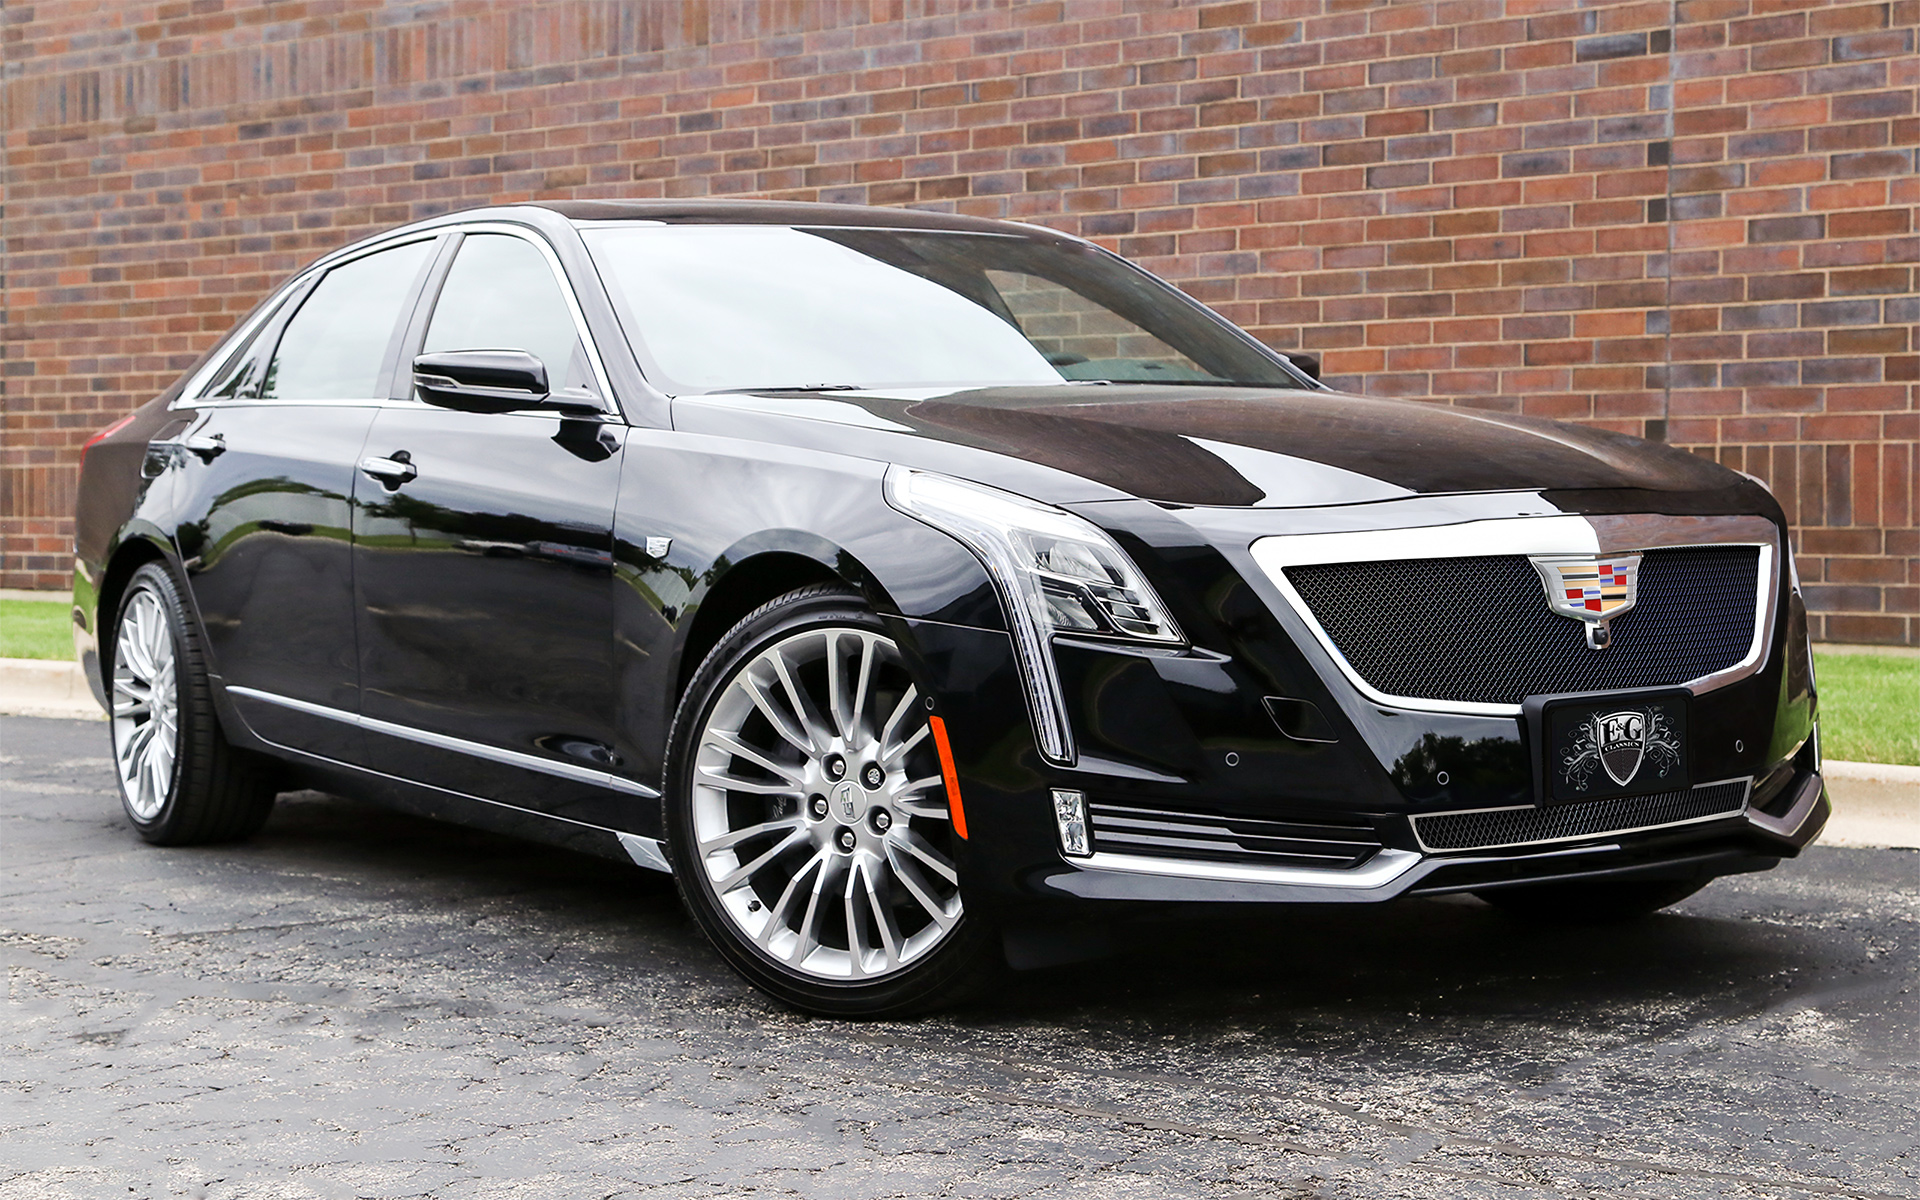 e g classics cadillac ct6 grille wing body kit. Black Bedroom Furniture Sets. Home Design Ideas